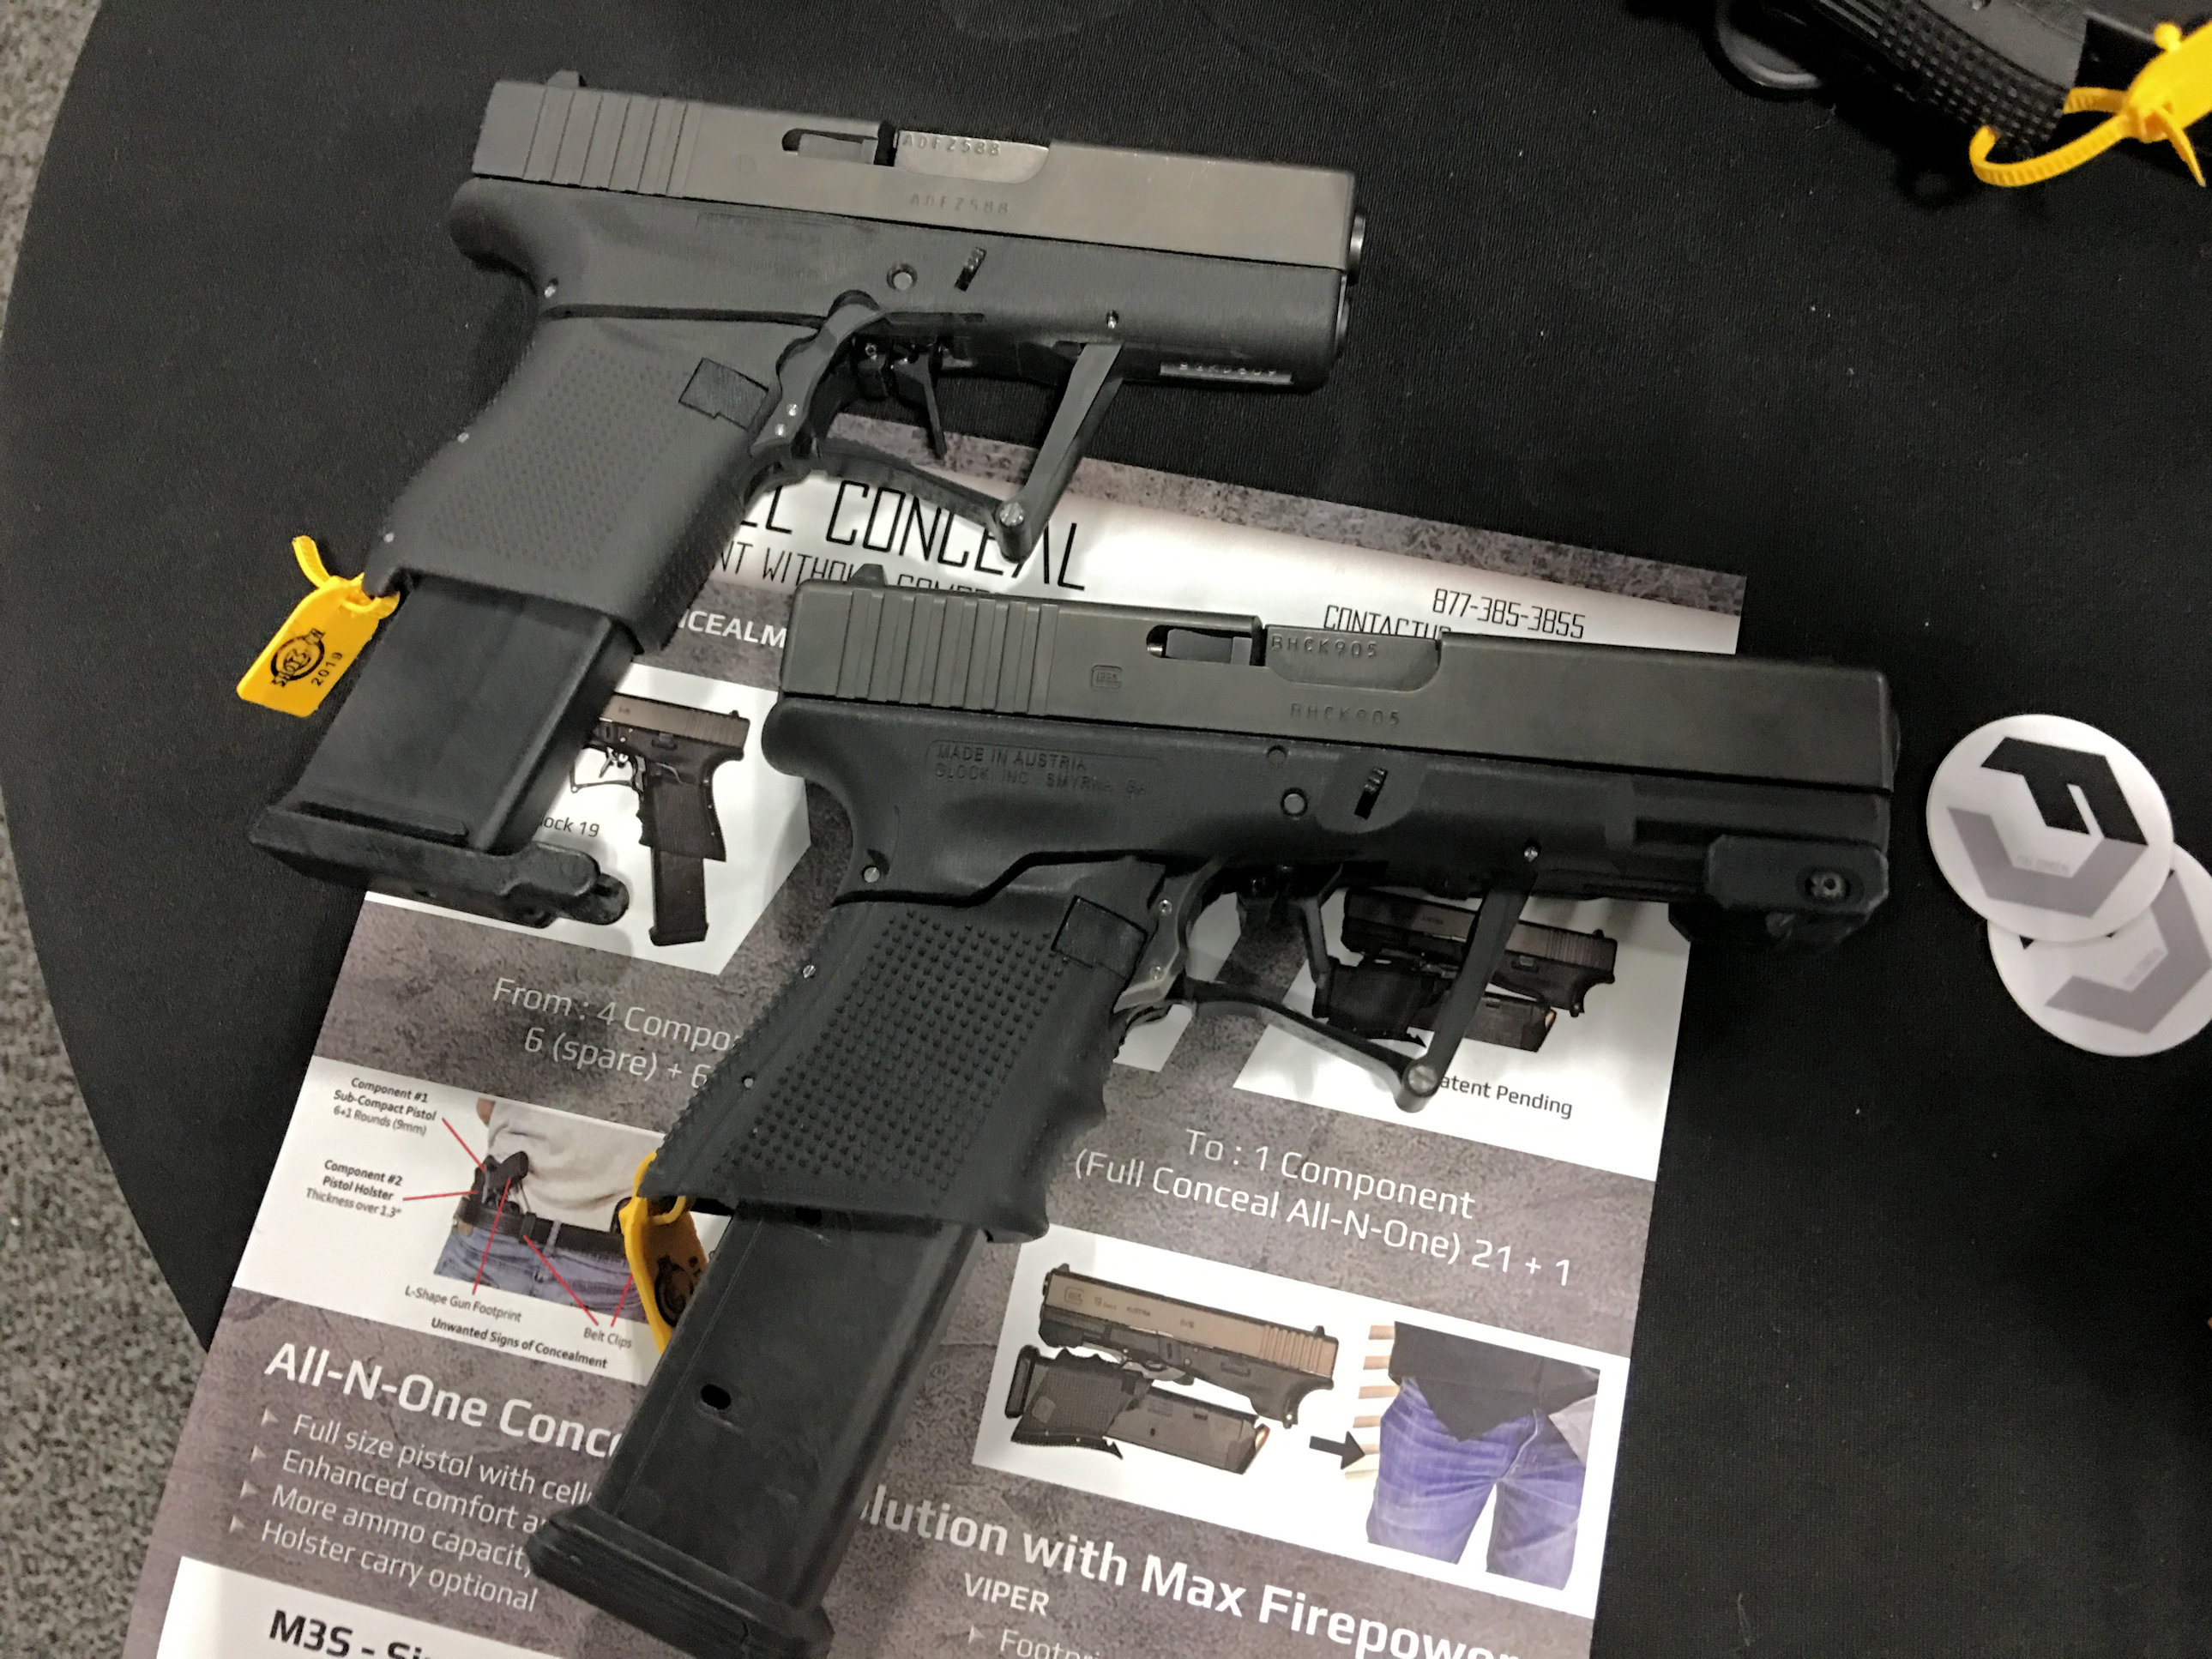 Full Conceal FC M3D (G19) and FC M3S (G43): Fantastic Folding Glock